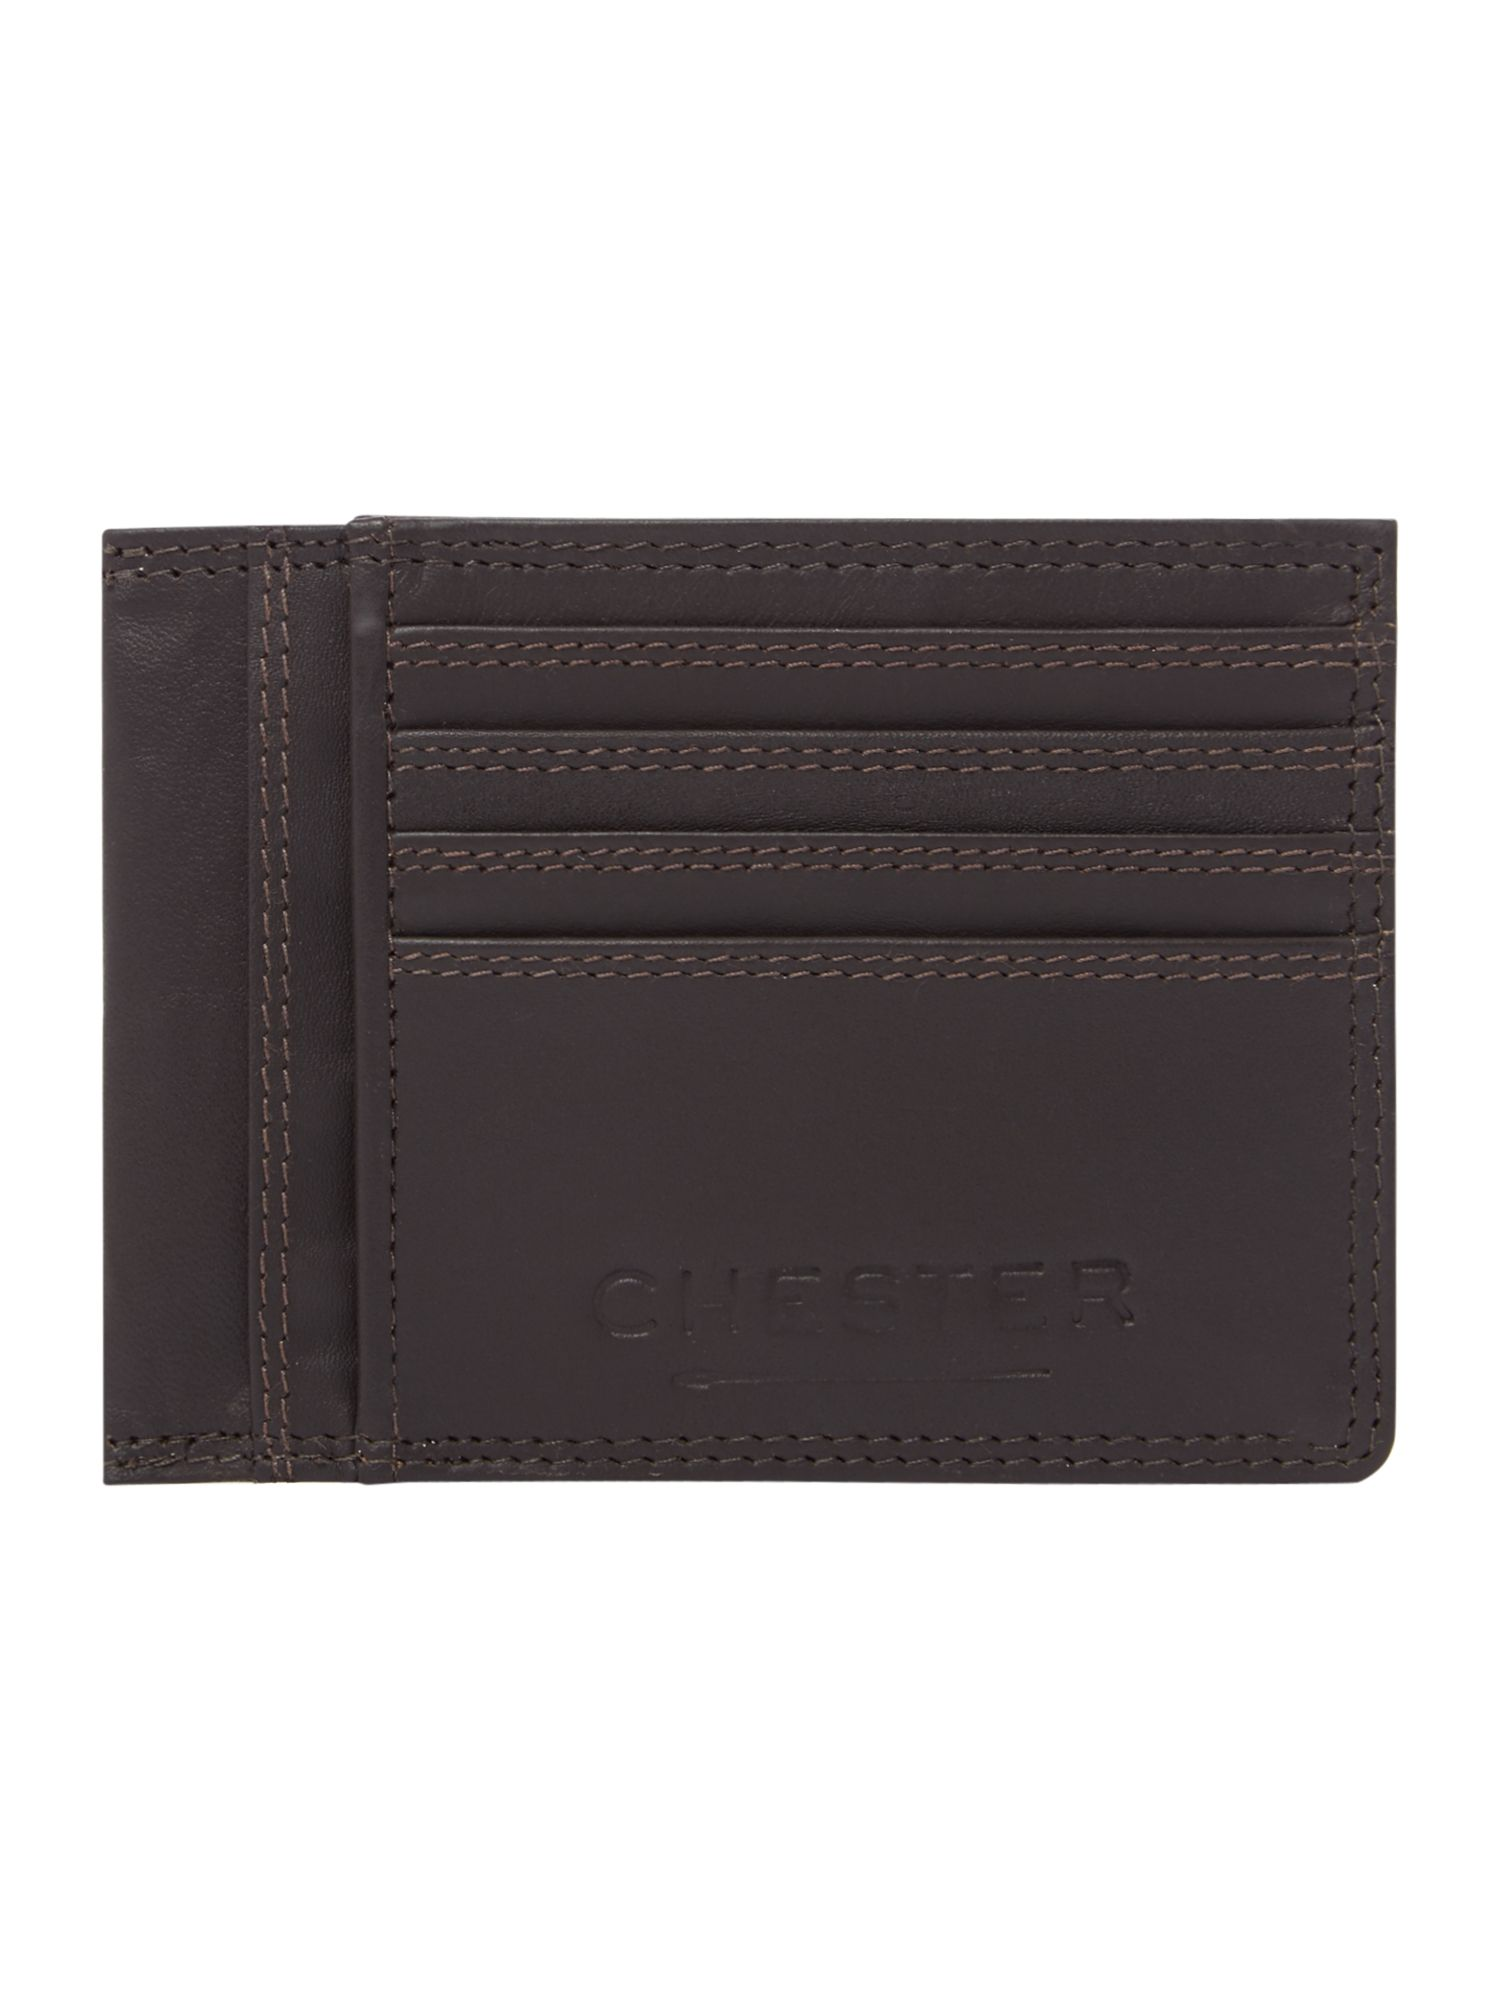 Chester Barrie Brown Leather Card Case, Brown